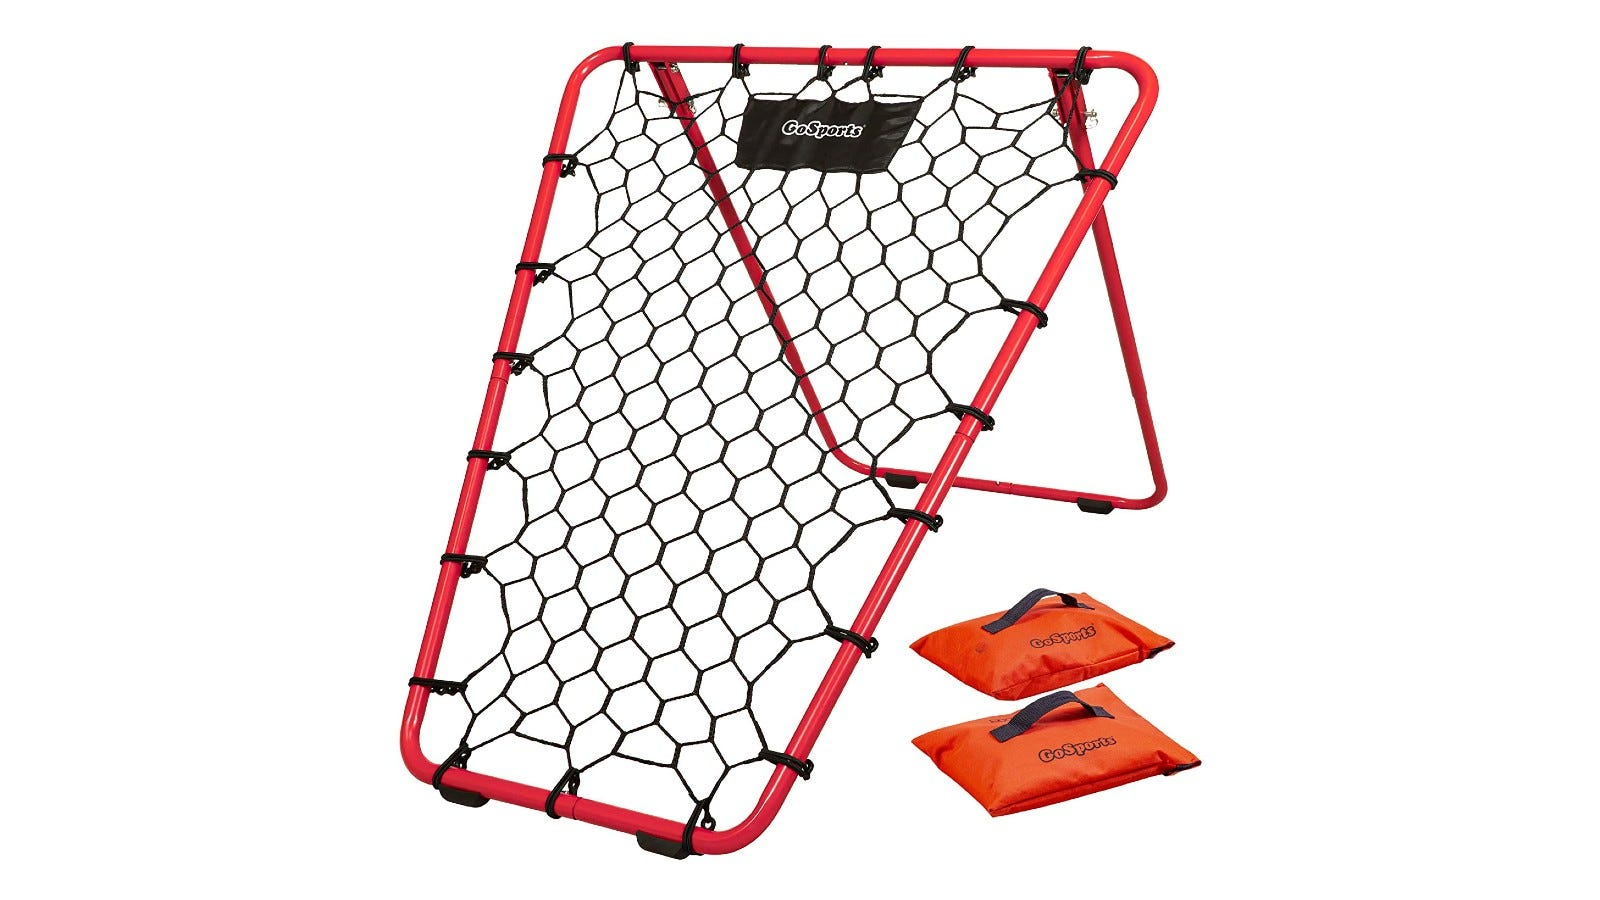 A rectangular-shaped basketball rebounder with a red frame and two orange sandbags beneath it.